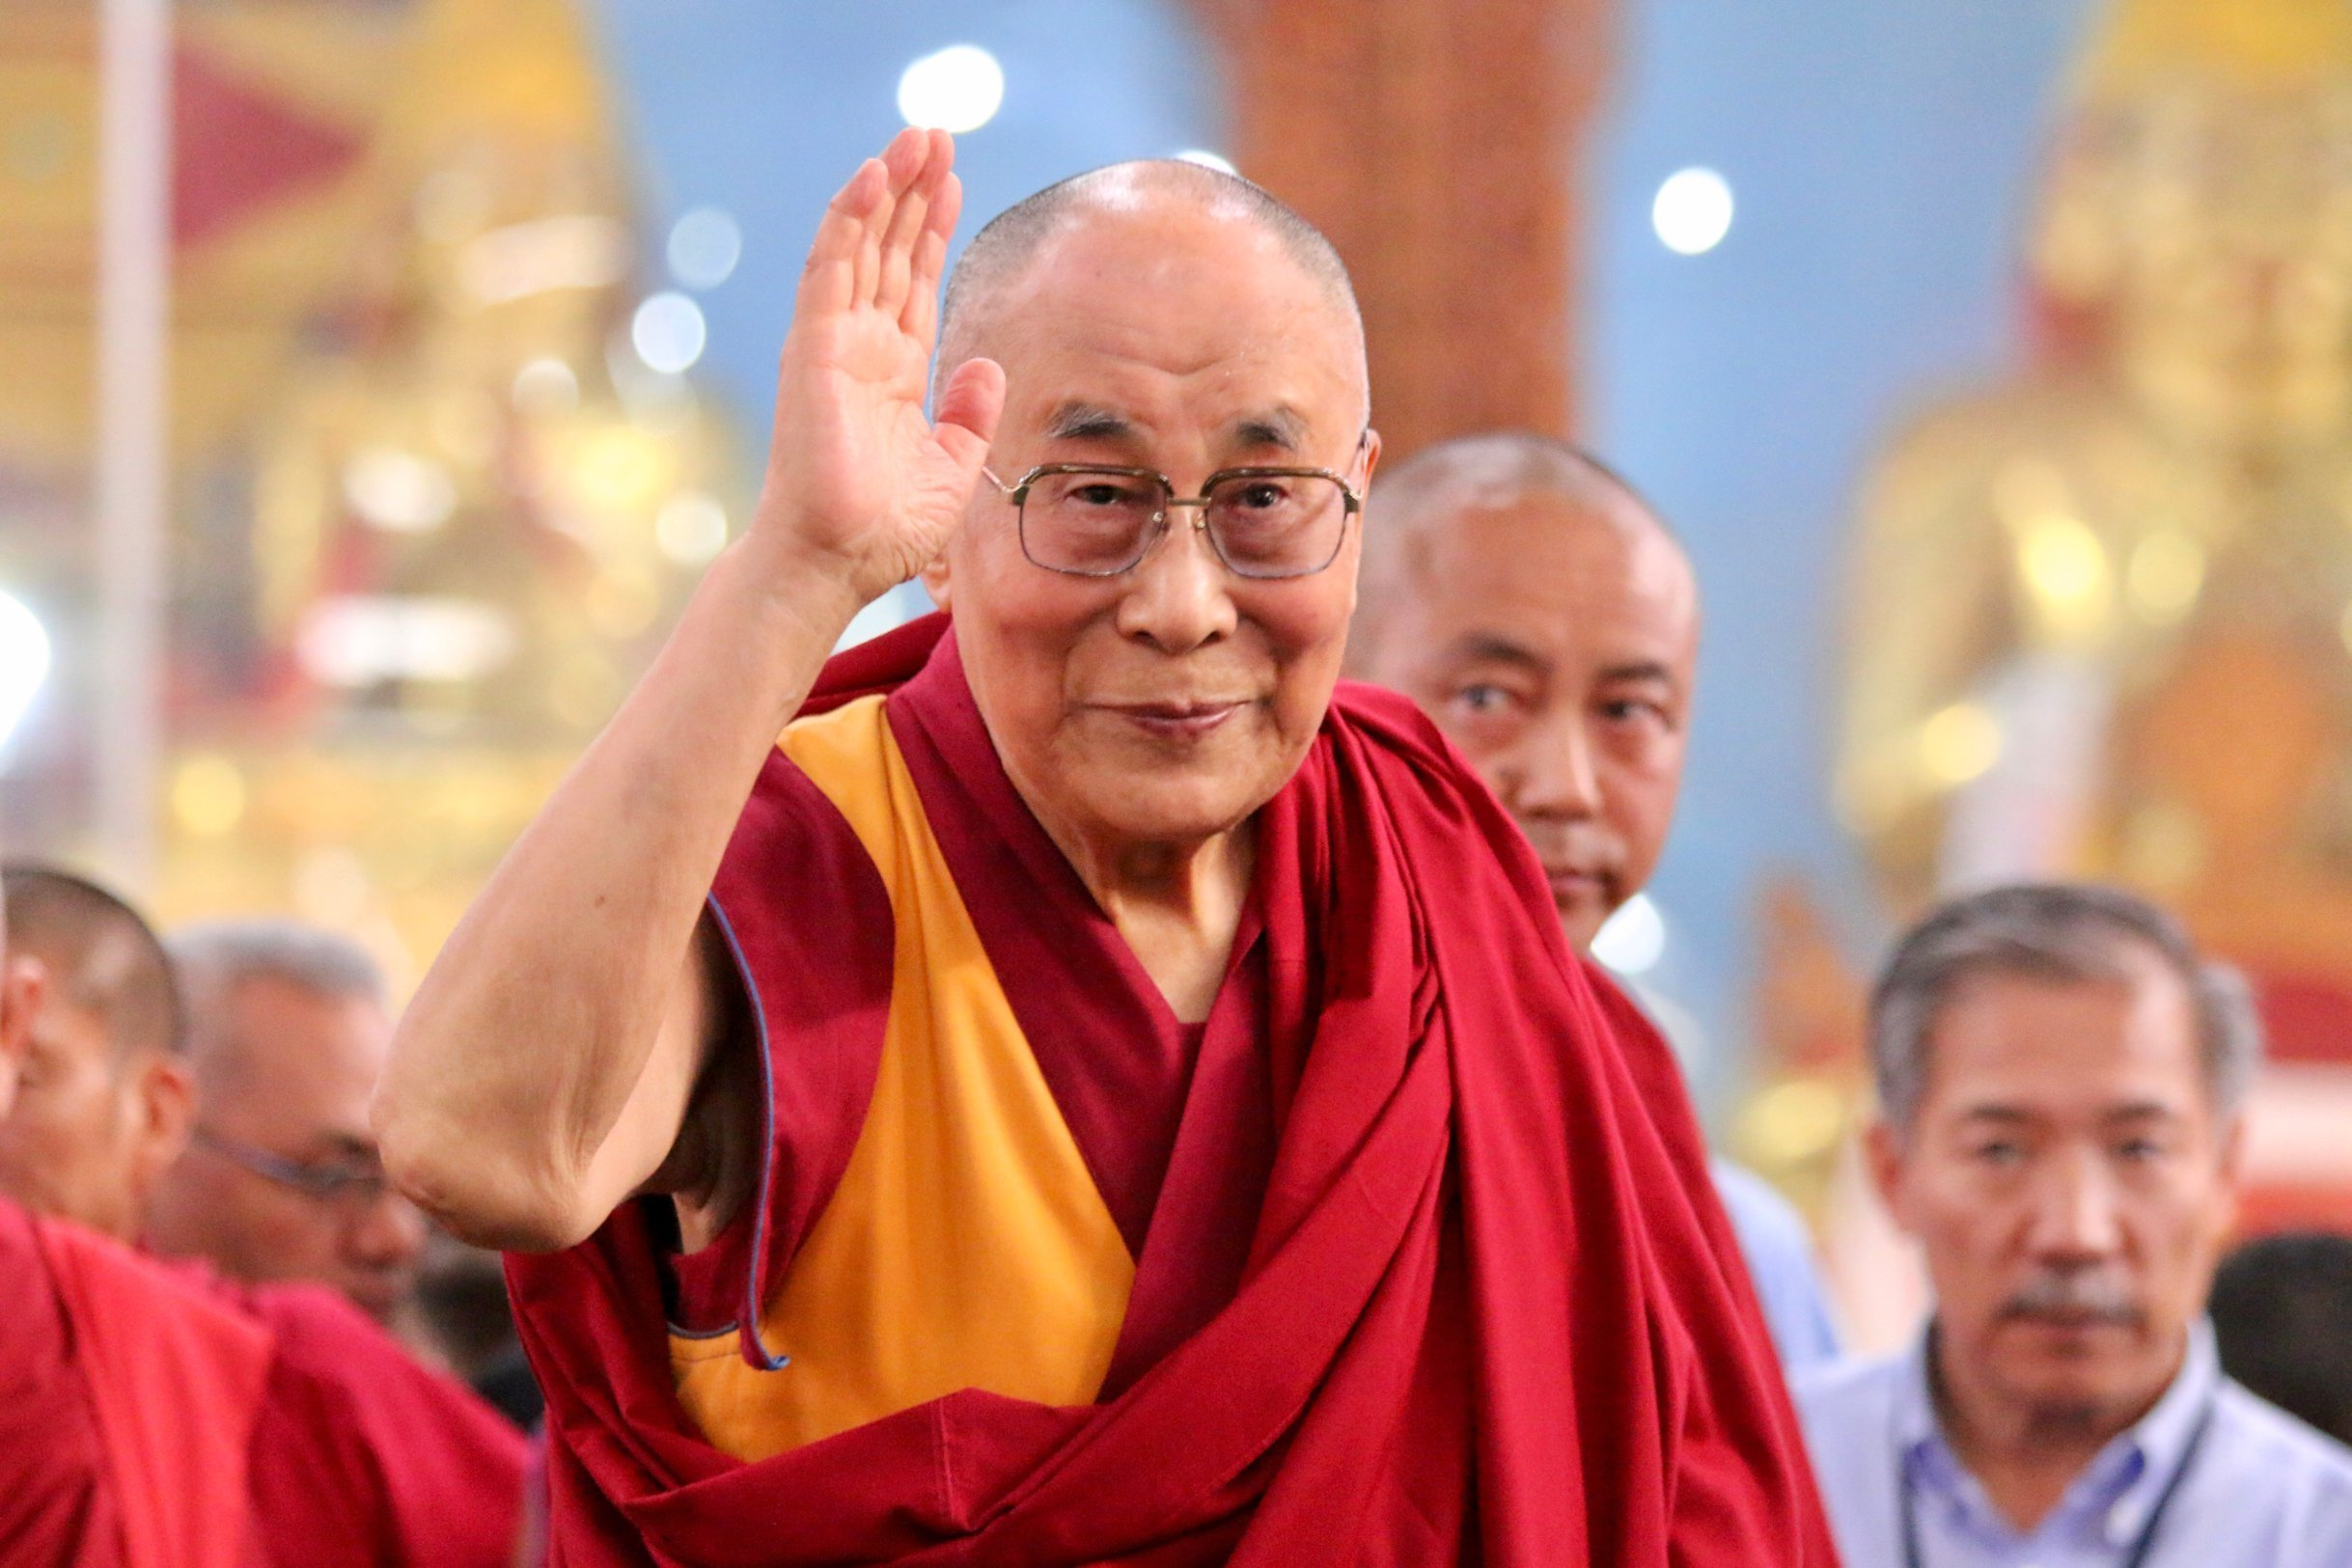 The Dalai Lama blames George Floyd's death on racism during virtual talk on compassion